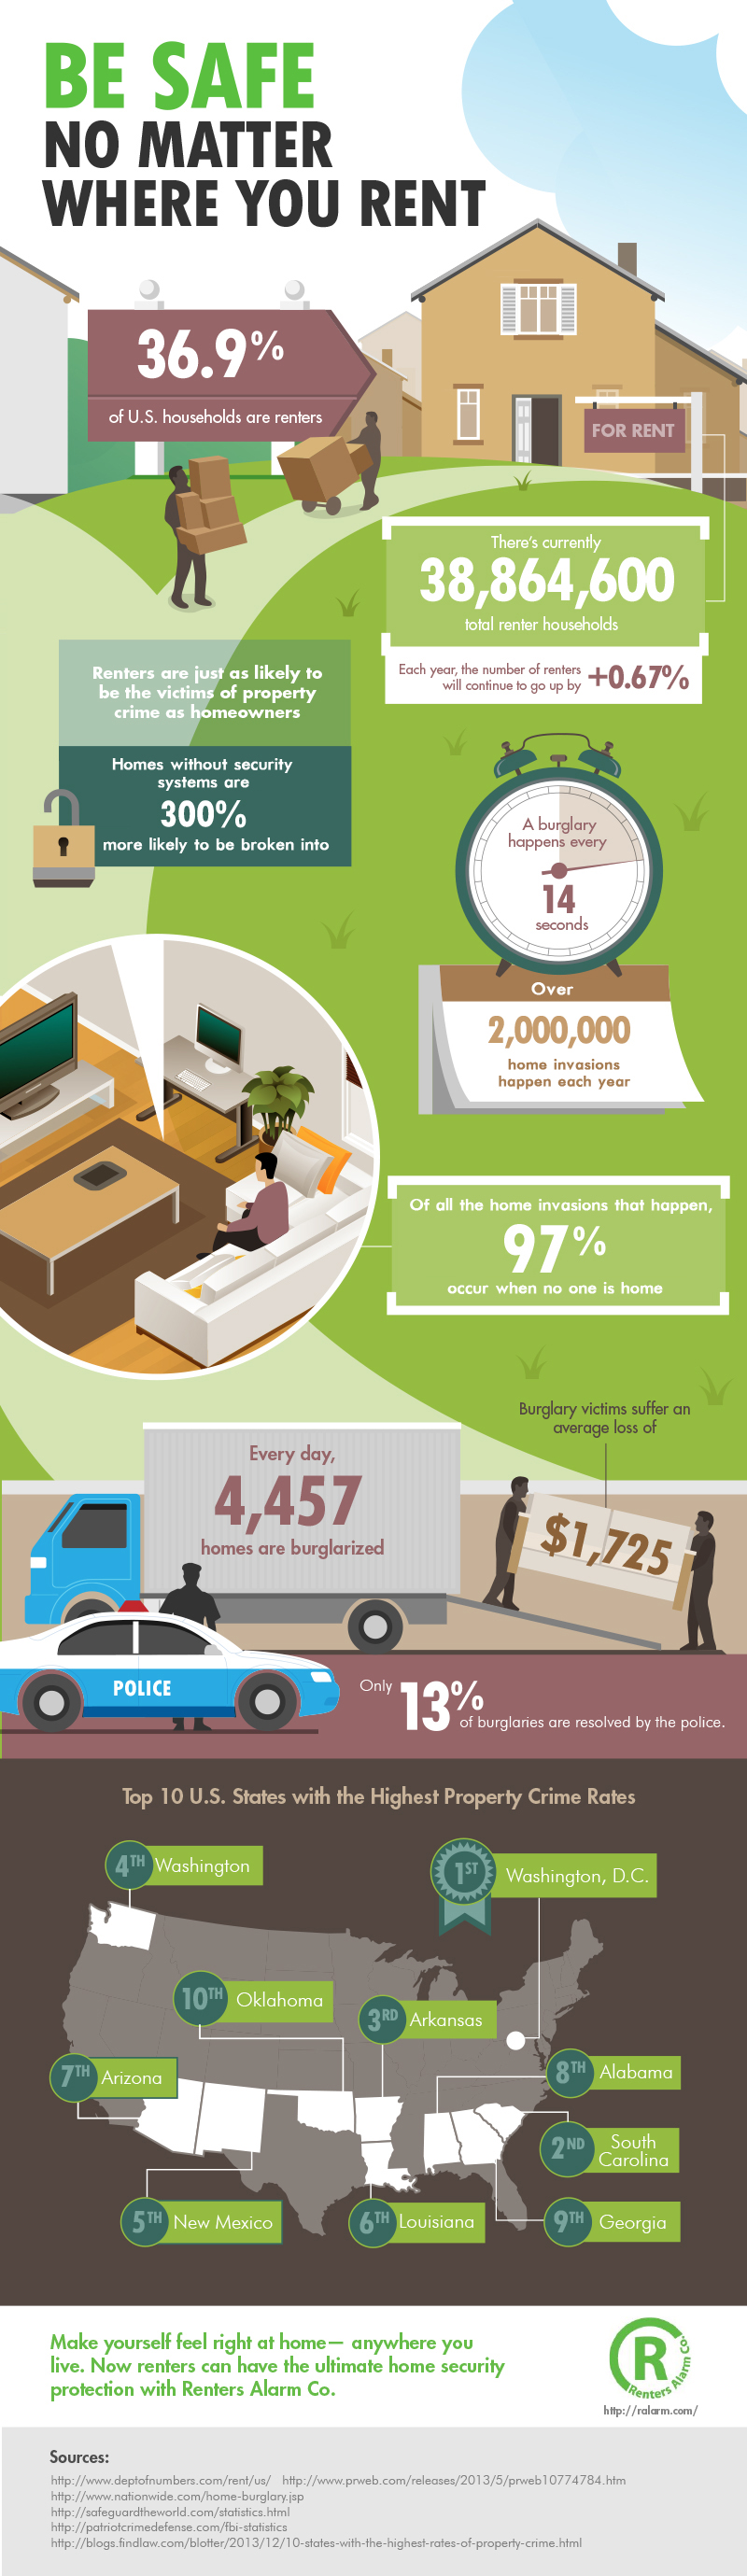 be-safe-no-matter-where-you-rent-infographic